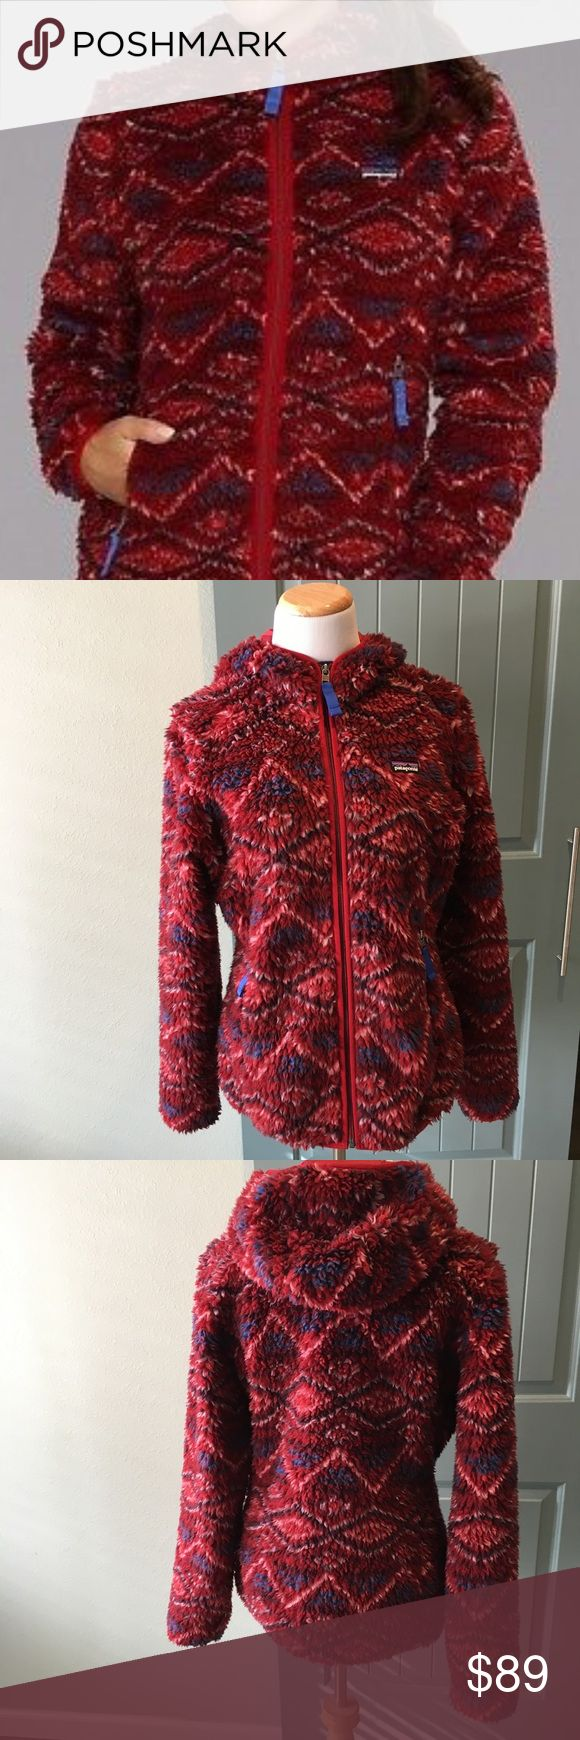 Patagonia retro x Alyana wax red Jacket Hard to find and such an amazing jacket!! No holes, stains or rips! Excellent condition! Patagonia Jackets & Coats